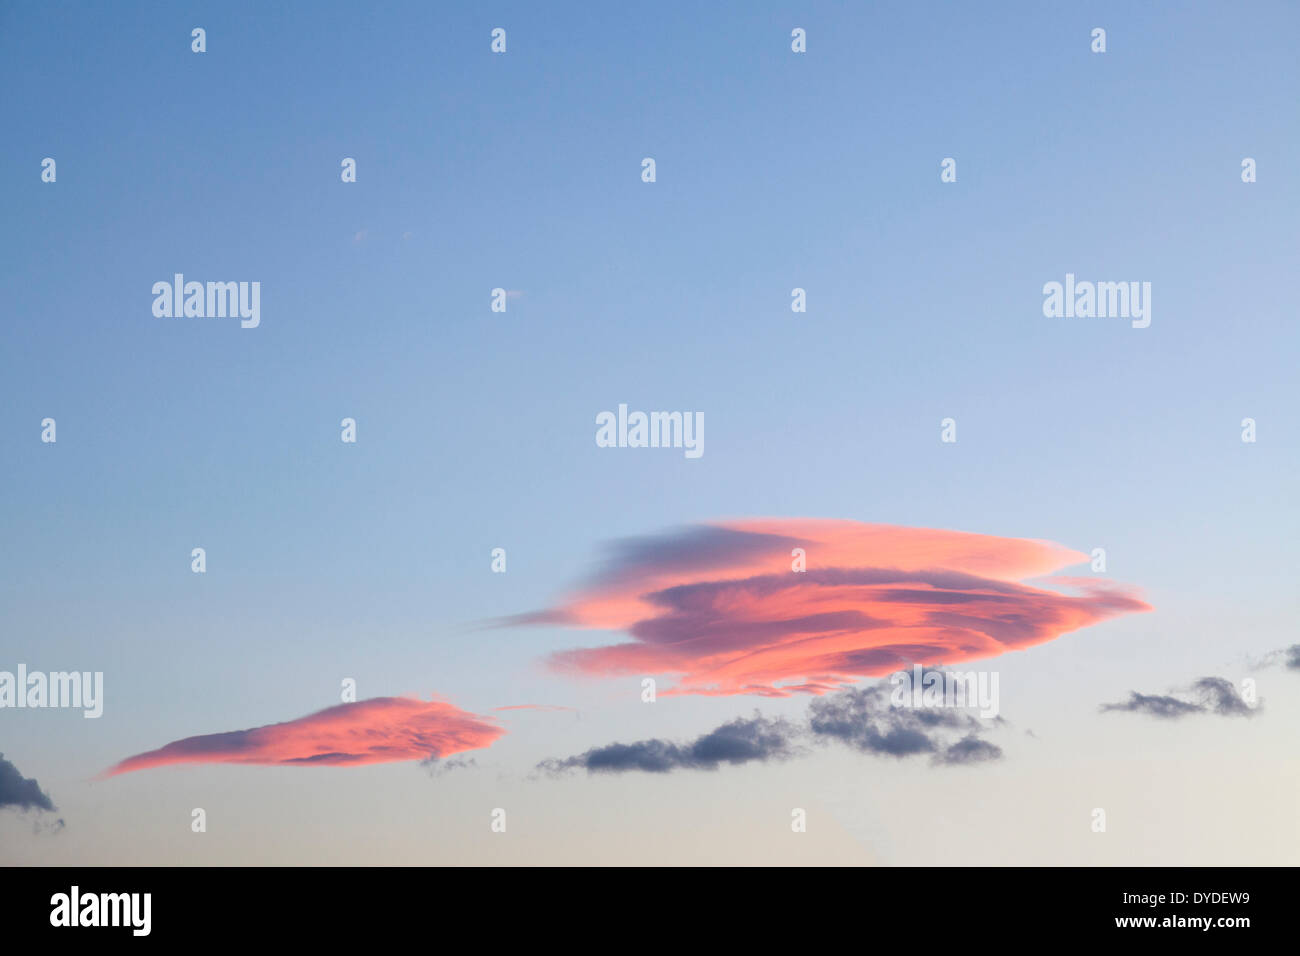 Evening pink clouds in blue sky. - Stock Image